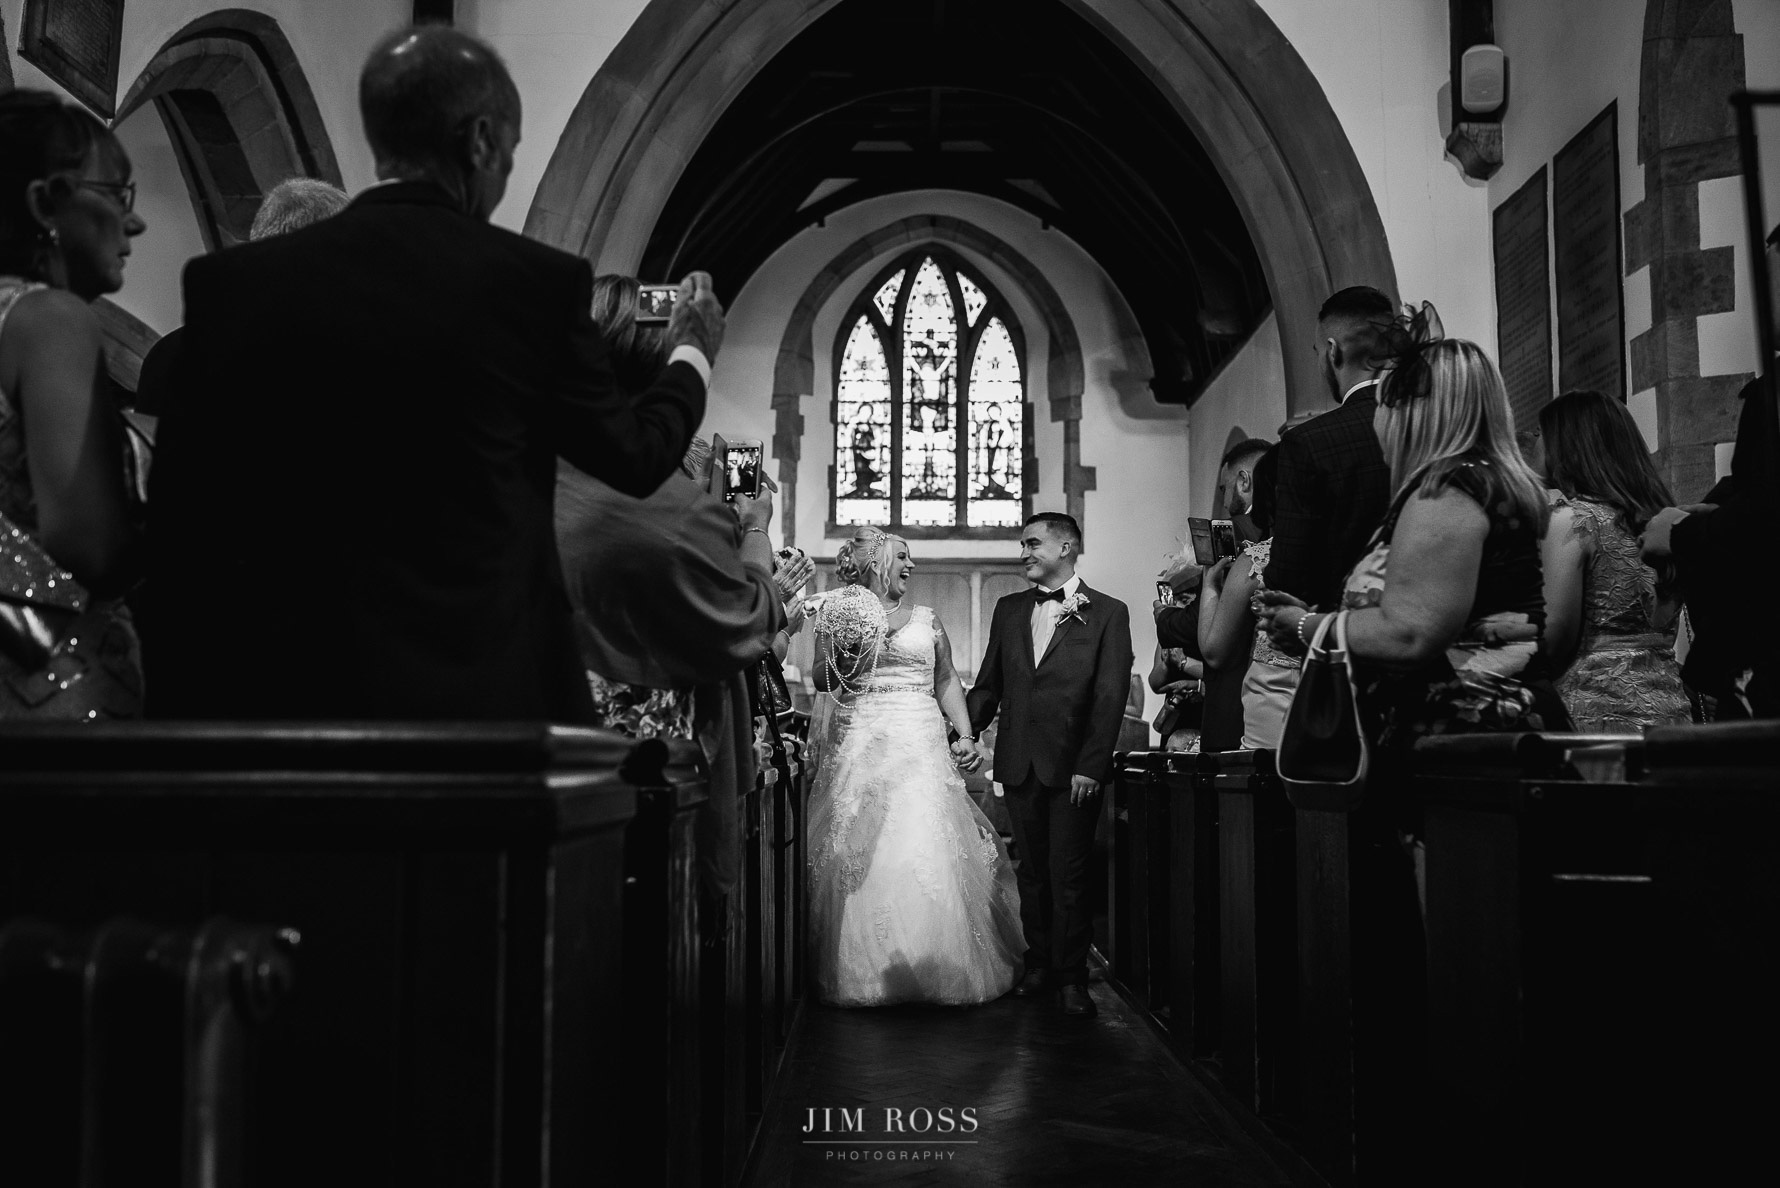 Newlyweds in church aisle